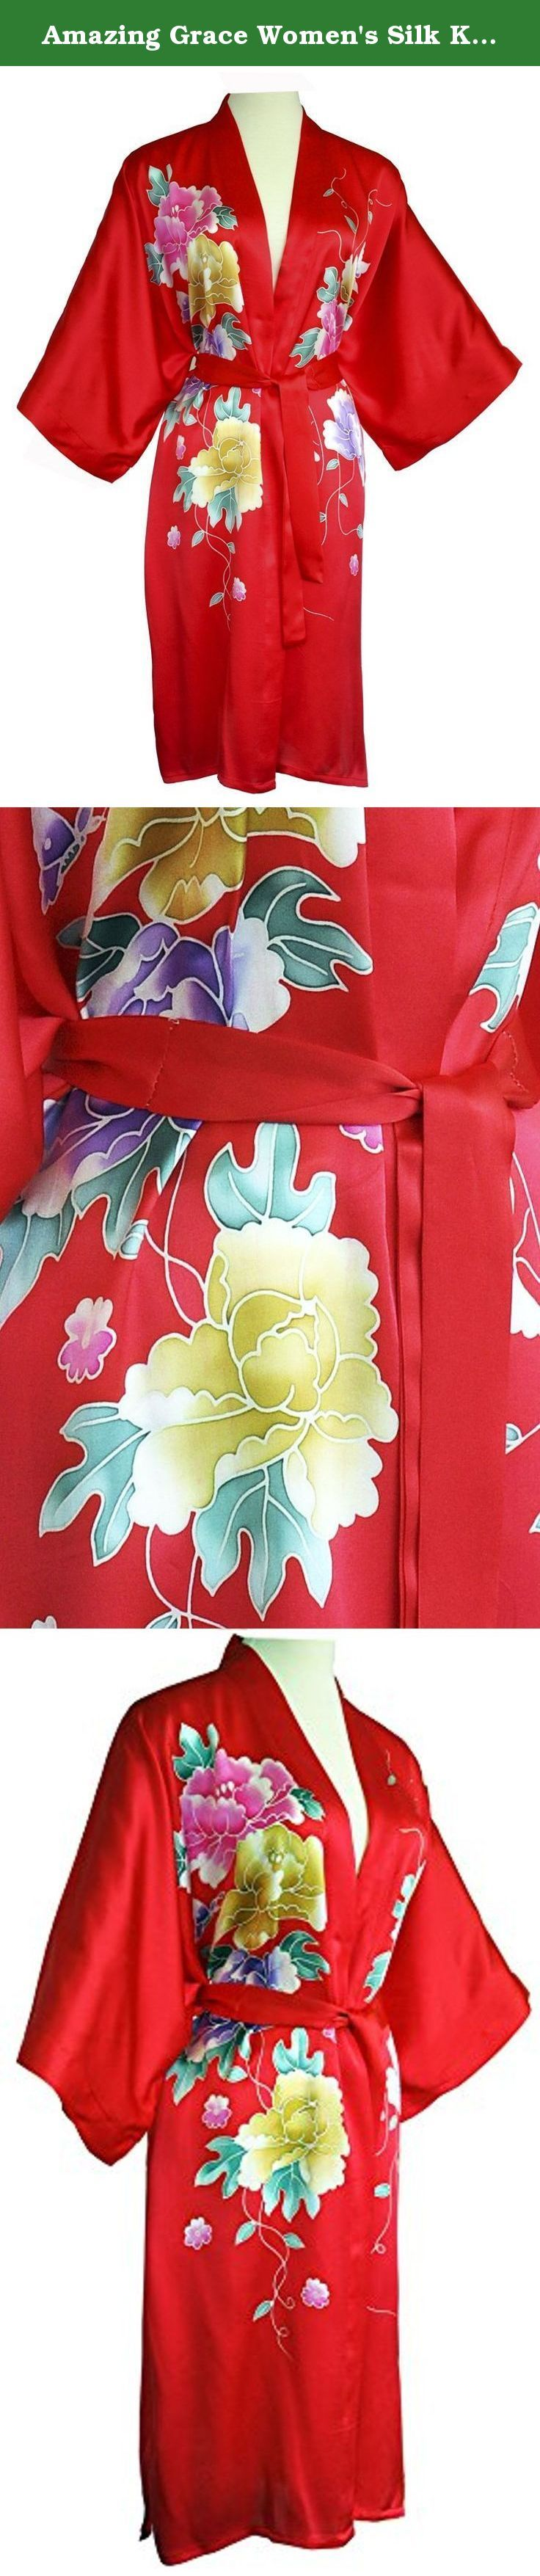 """Amazing Grace Women's Silk Kimono, Short Robe - Hand Painted Floral (Red Floral). Kimono size: One size fits almost everyone. Defy gravity with hand painted, Chinese silk kimono robe that makes you feel you're floating. Generous proportions measuring 43"""" x 43"""" tailored to fit almost everyone allow a one-size garment with freedom of movement and sense of freefall unlike any other. Note: Kindly understand that the actual item's color may slightly differs from the images due to the…"""